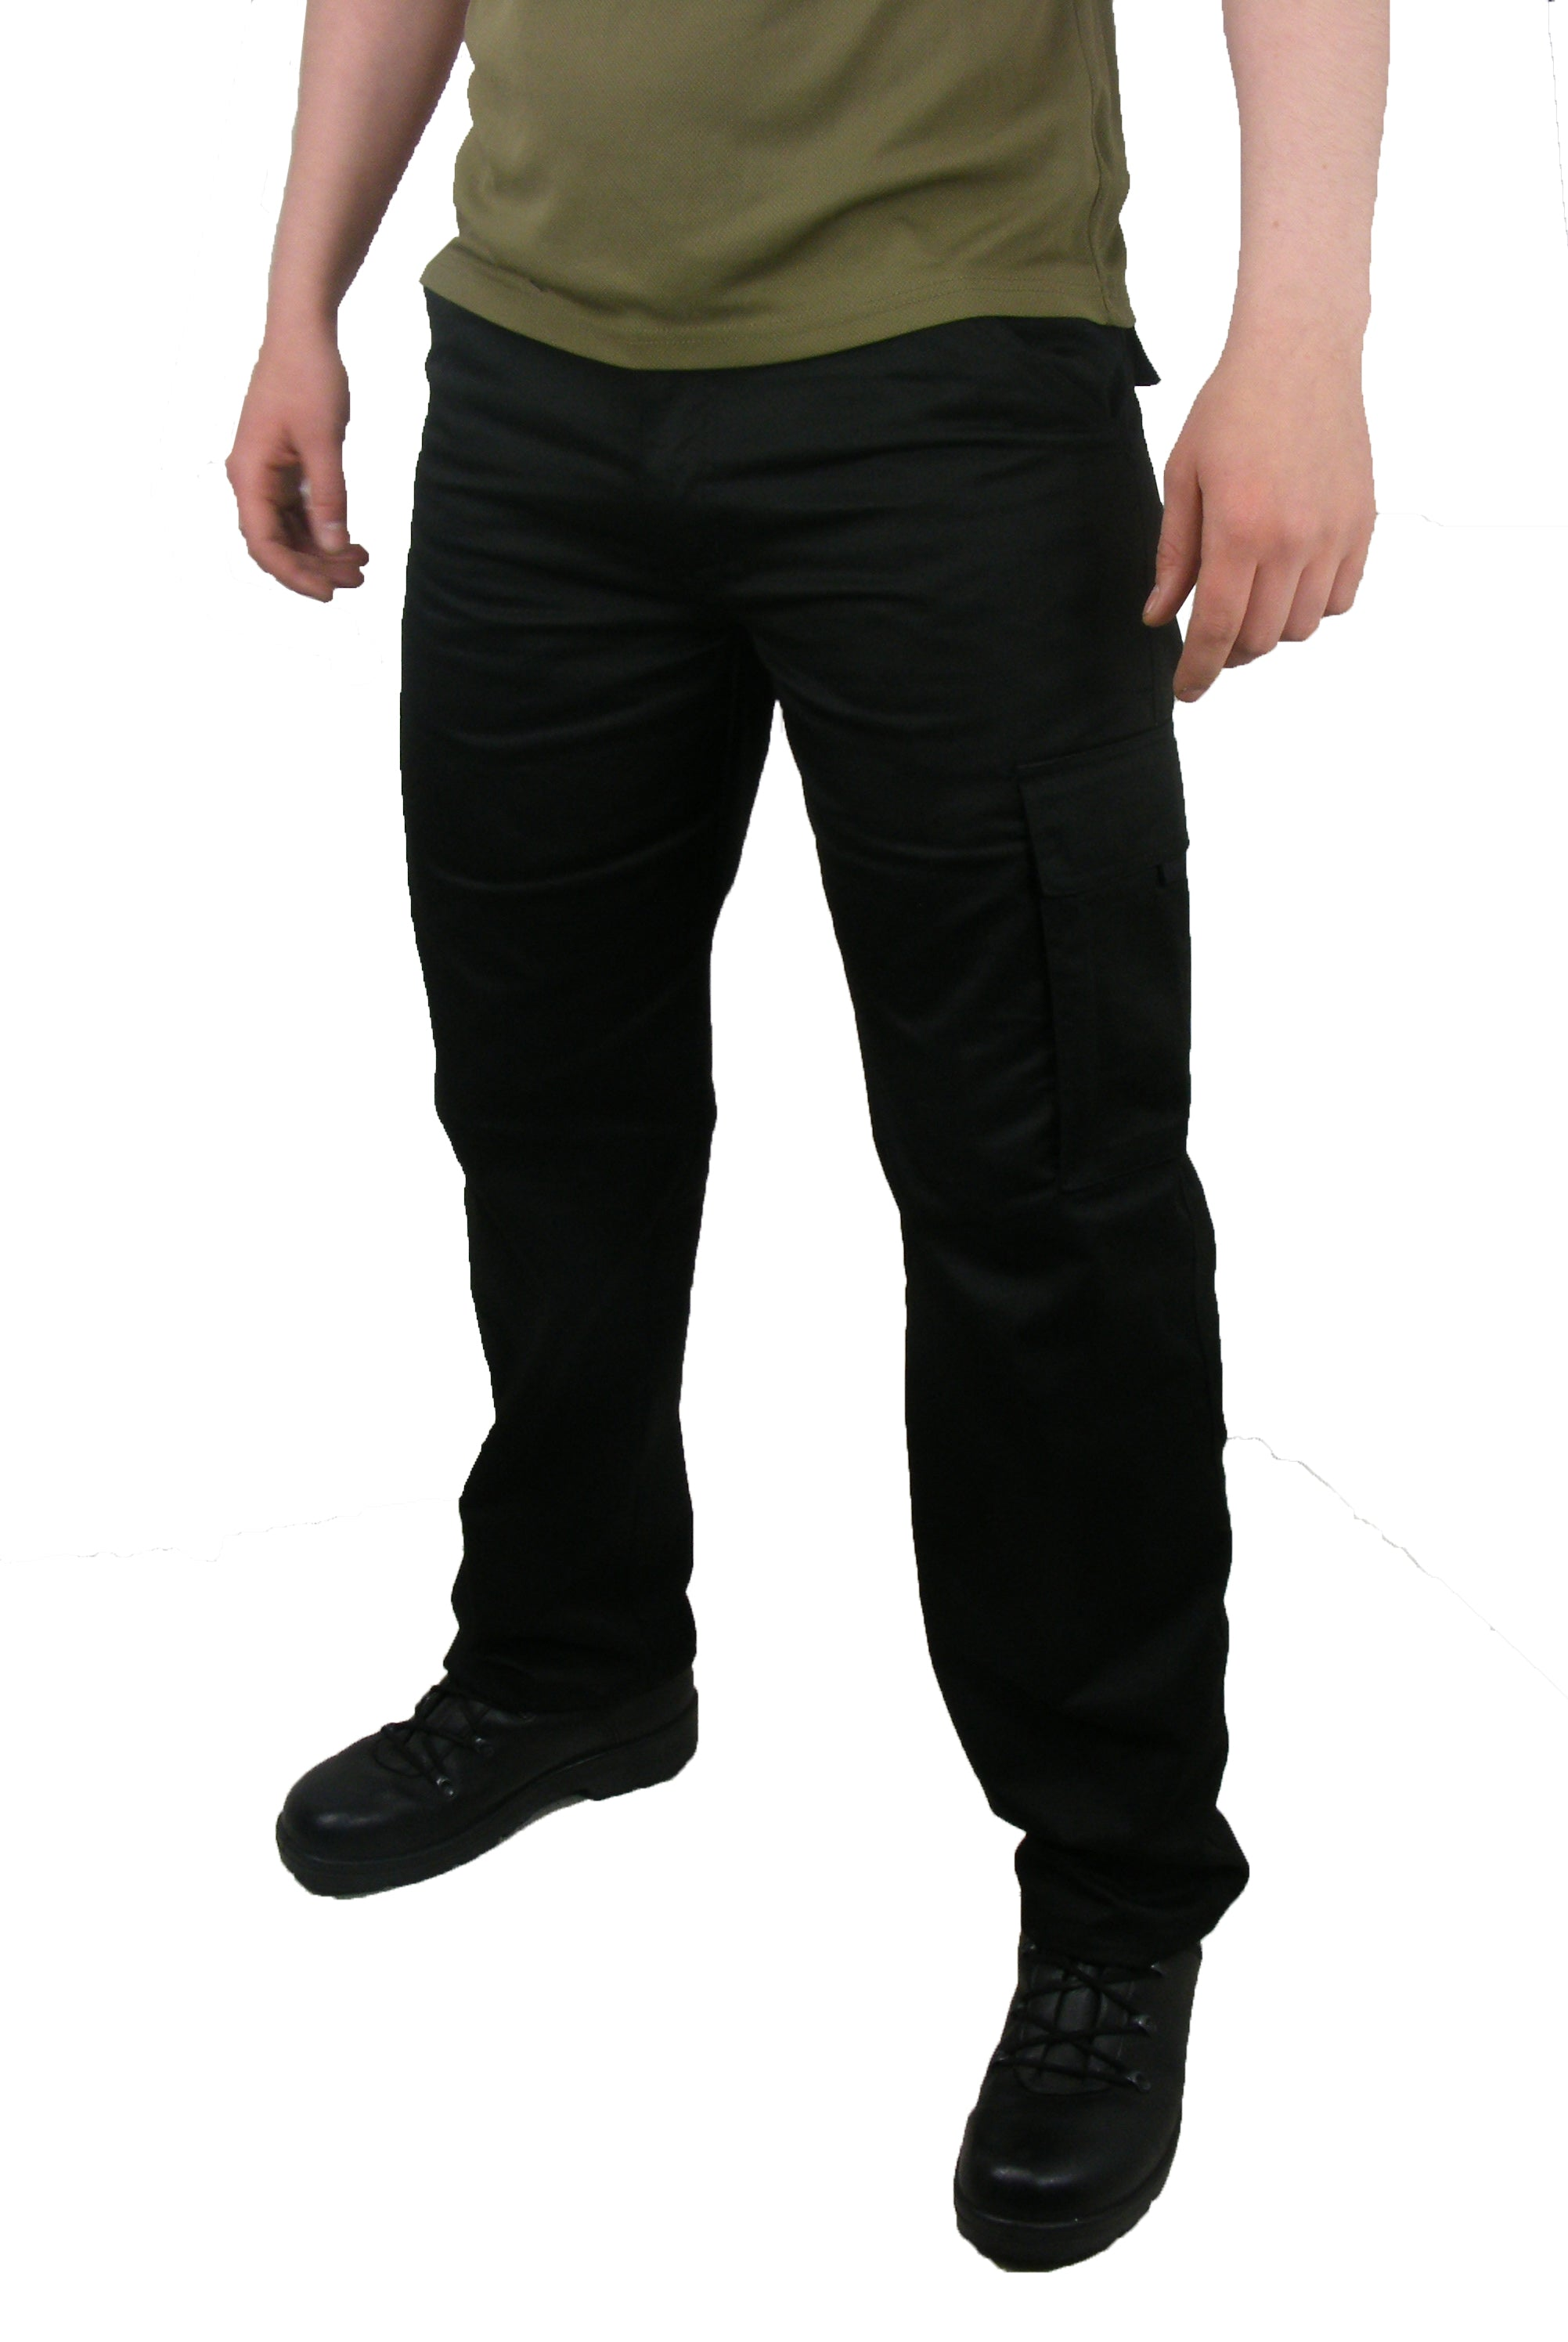 Dutch Military Police - Black Five-Pocket Security Trousers - Unissued